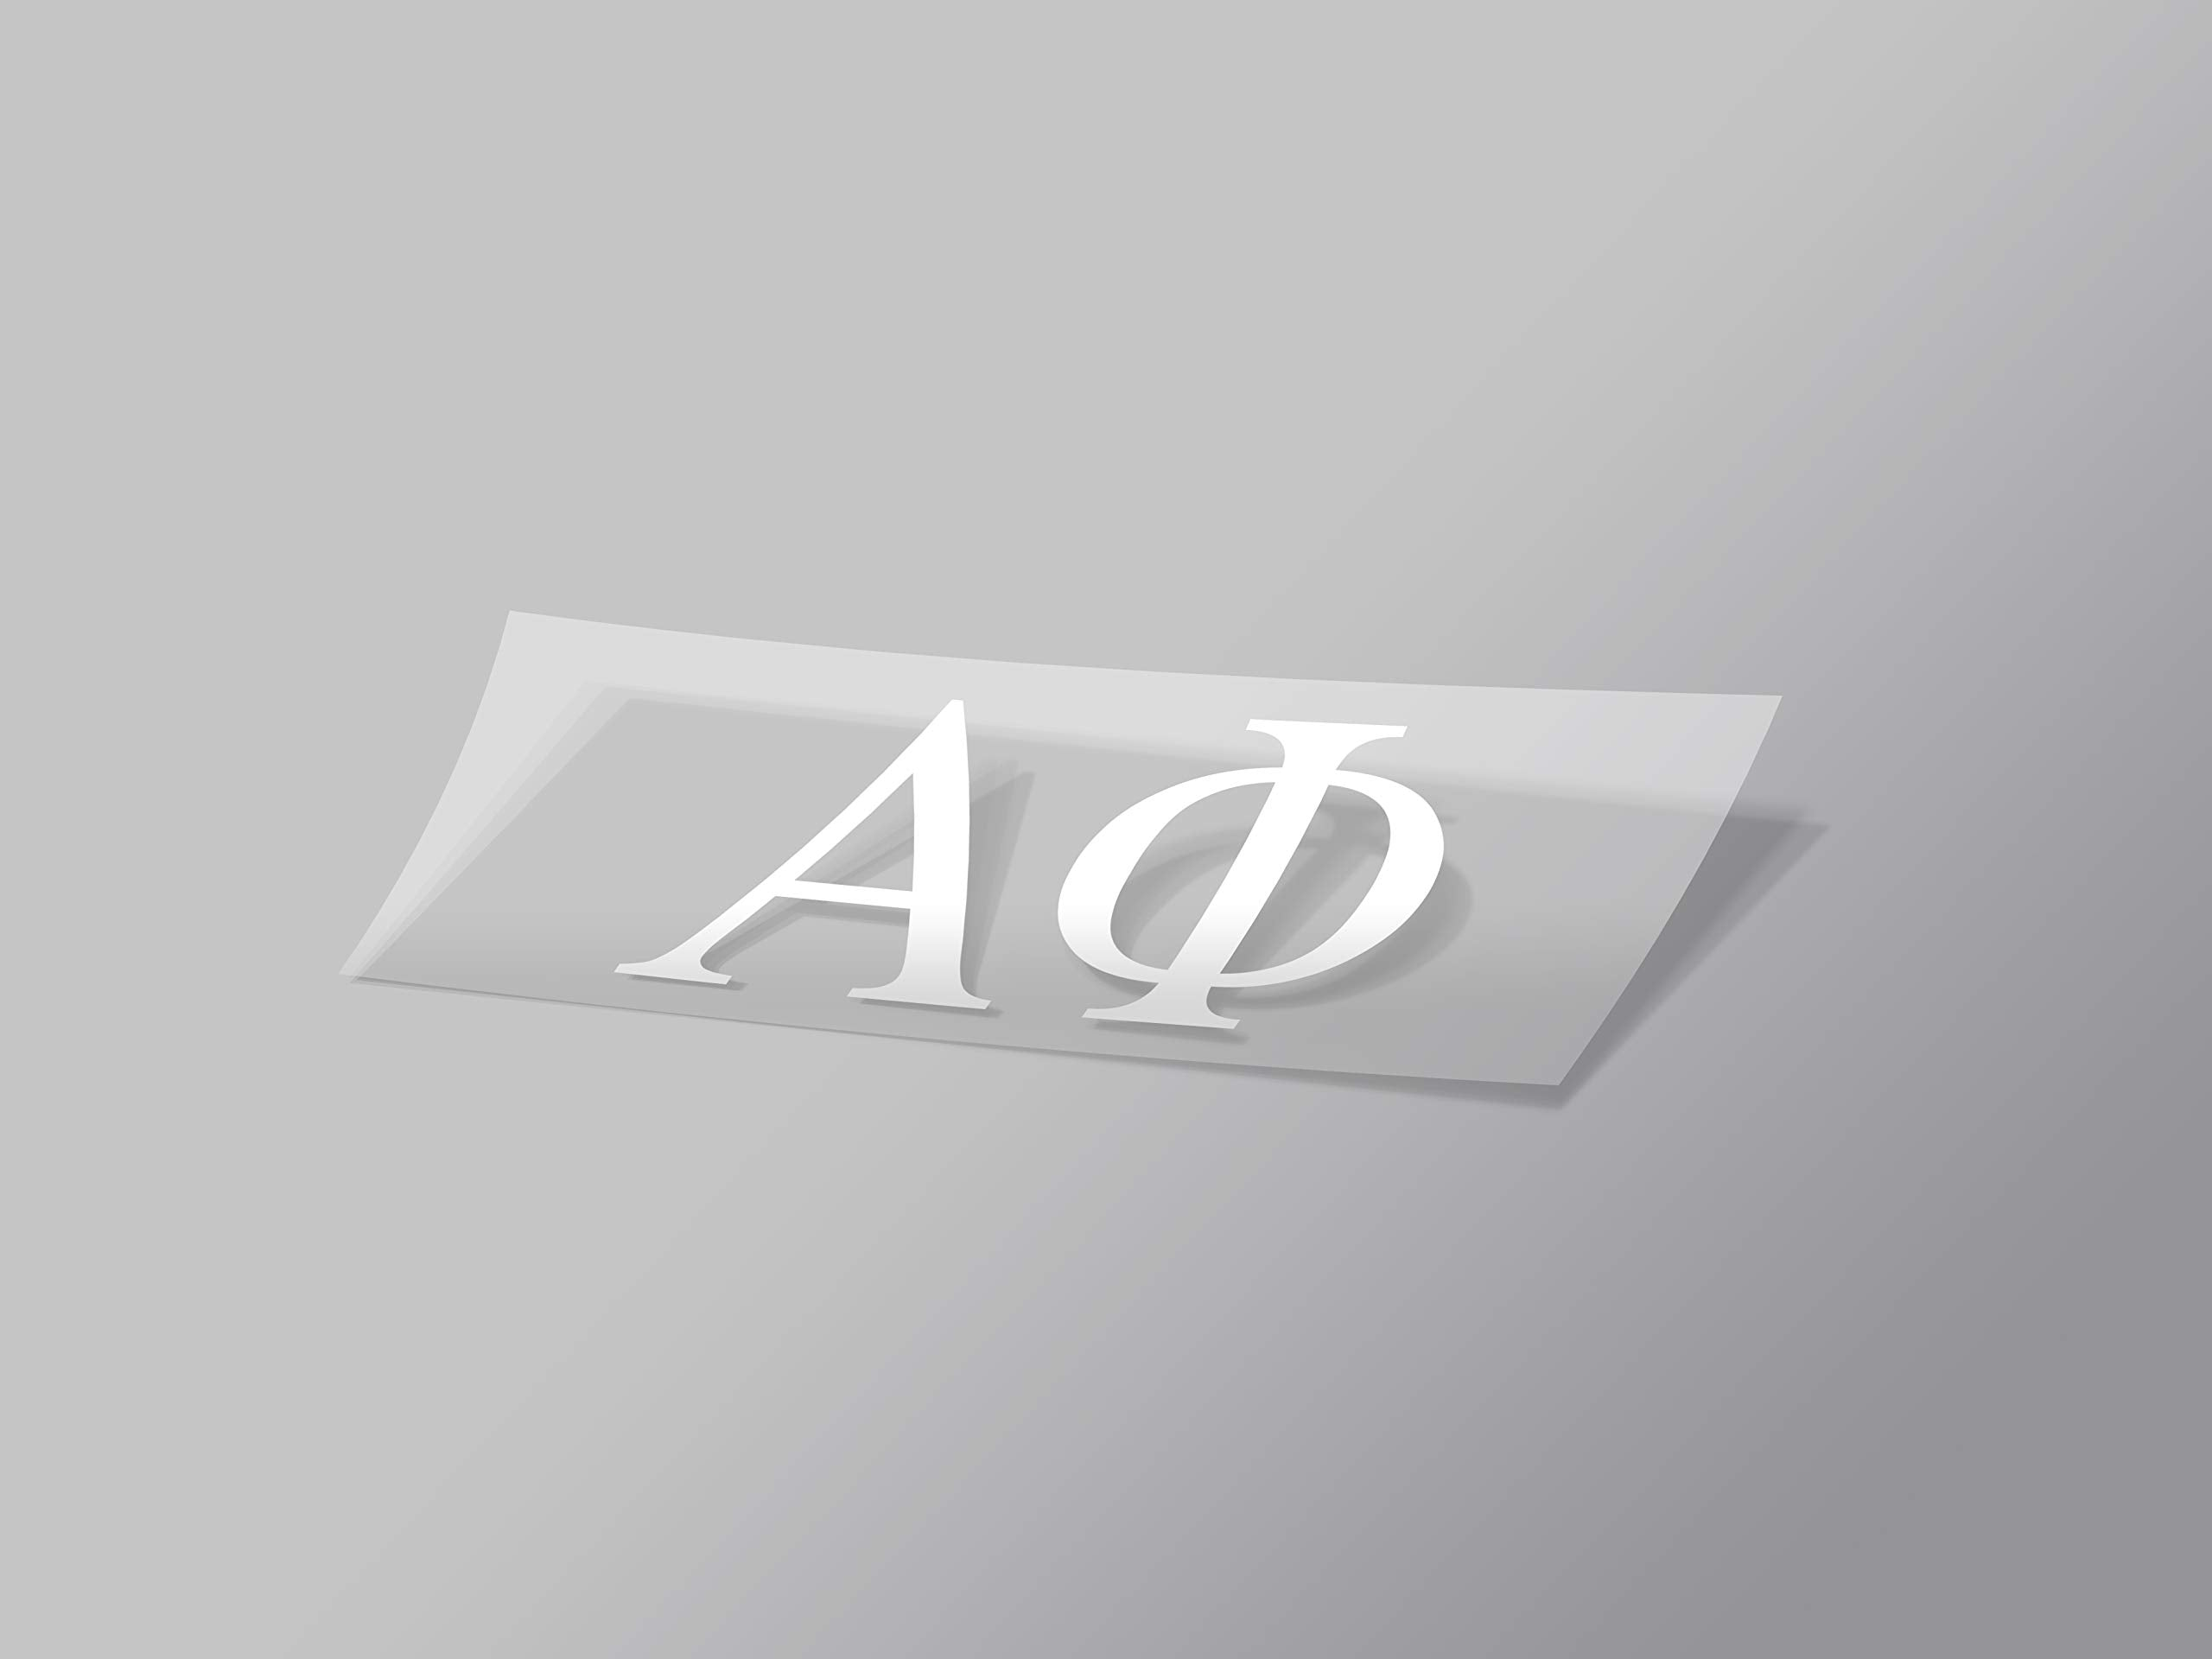 "Alpha Phi Omega Sticker Greek Sorority Decal for Car, Laptop, Windows, Officially Licensed Product, Monogram Design 2.5"" Tall - White"